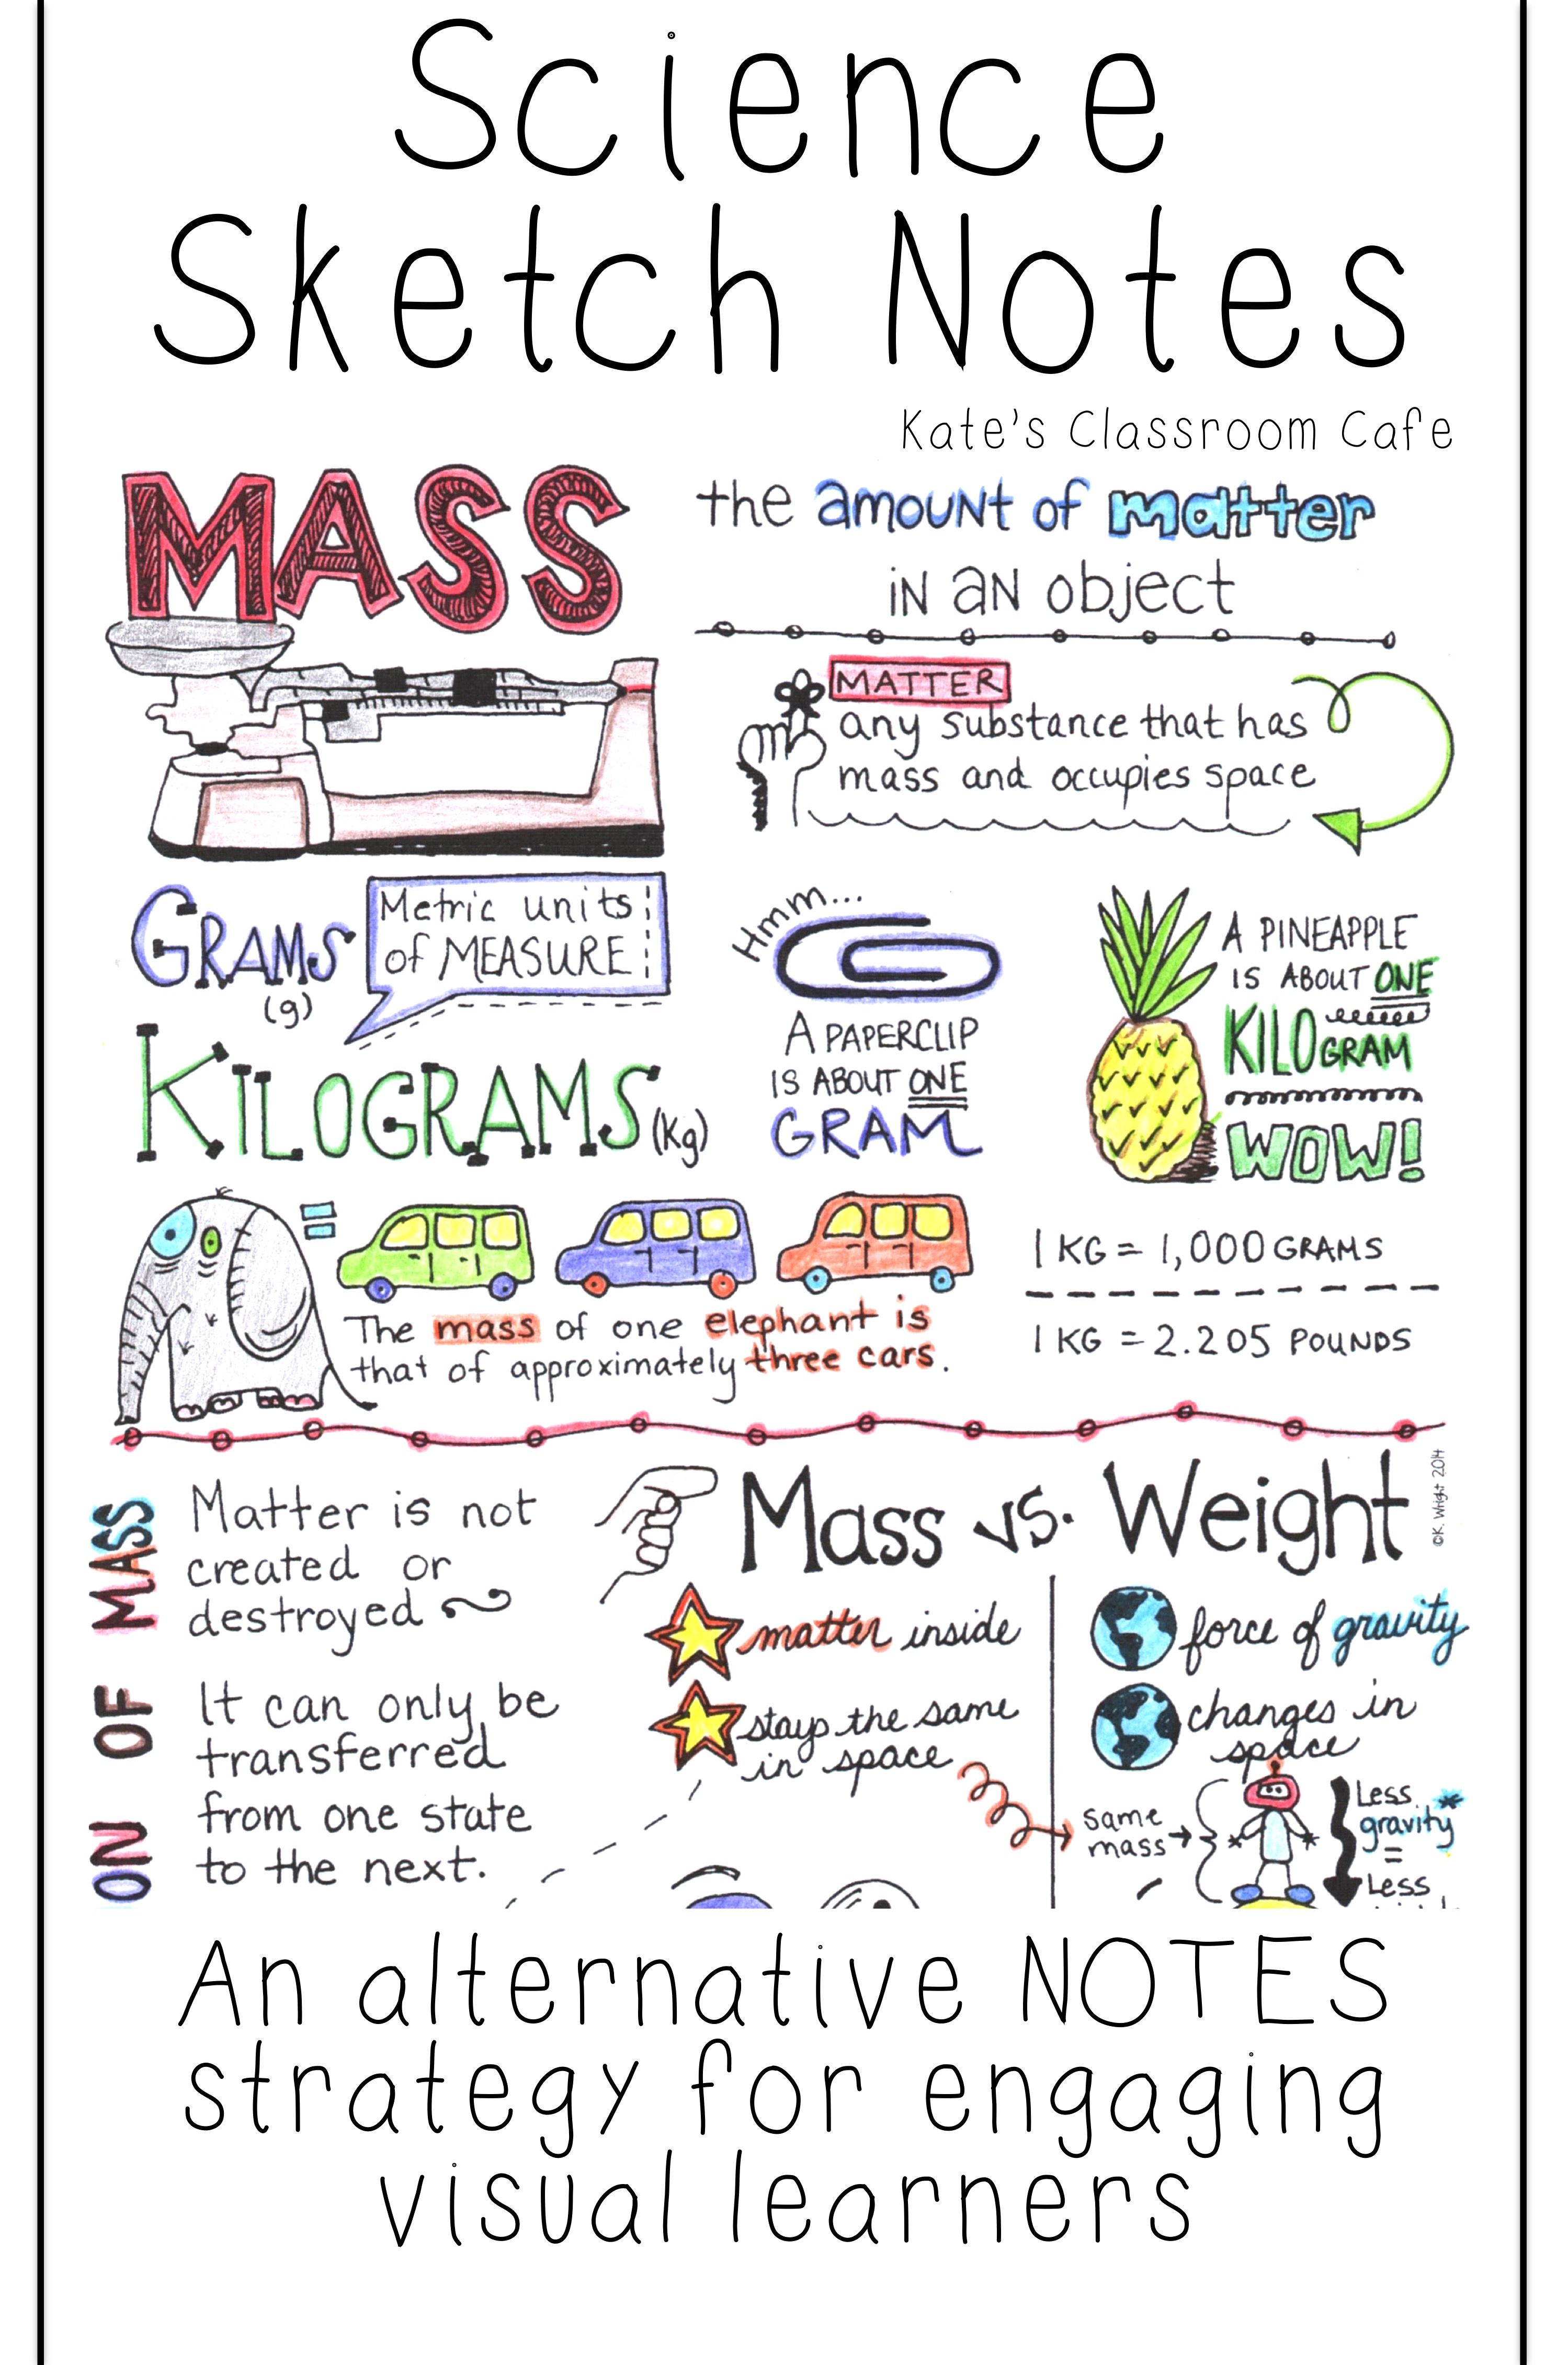 Density Mass Volume Density Sketch Notes